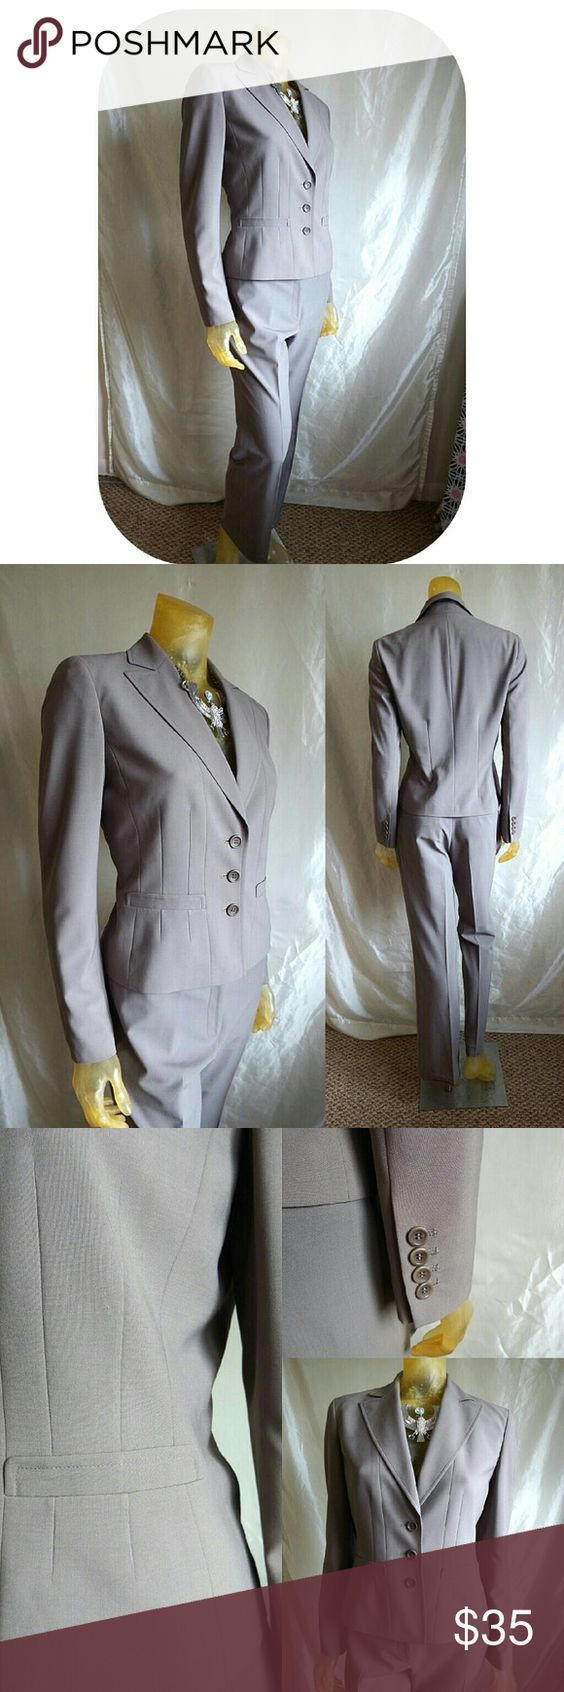 "Ann Taylor - Oyster Gray Pant Suit Nice 2 piece suit for those times when you want to make a professional and polished impression.  Blazer has Notched collar and is satin lined, 3 button front closure, front pockets and slim-fit stitching. 21"" from nape to hem, 16"" across shoulders, 24"" button-cuff sleeves(from shoulders)  Pants: Unlined 4 pocket style with 30"" dropped waist, 8"" rise, 38"" outerseam/30"" inseam. Zip with slide hook and button closure. 53% poly/43% Wool/4% spandex. Ann Taylor…"